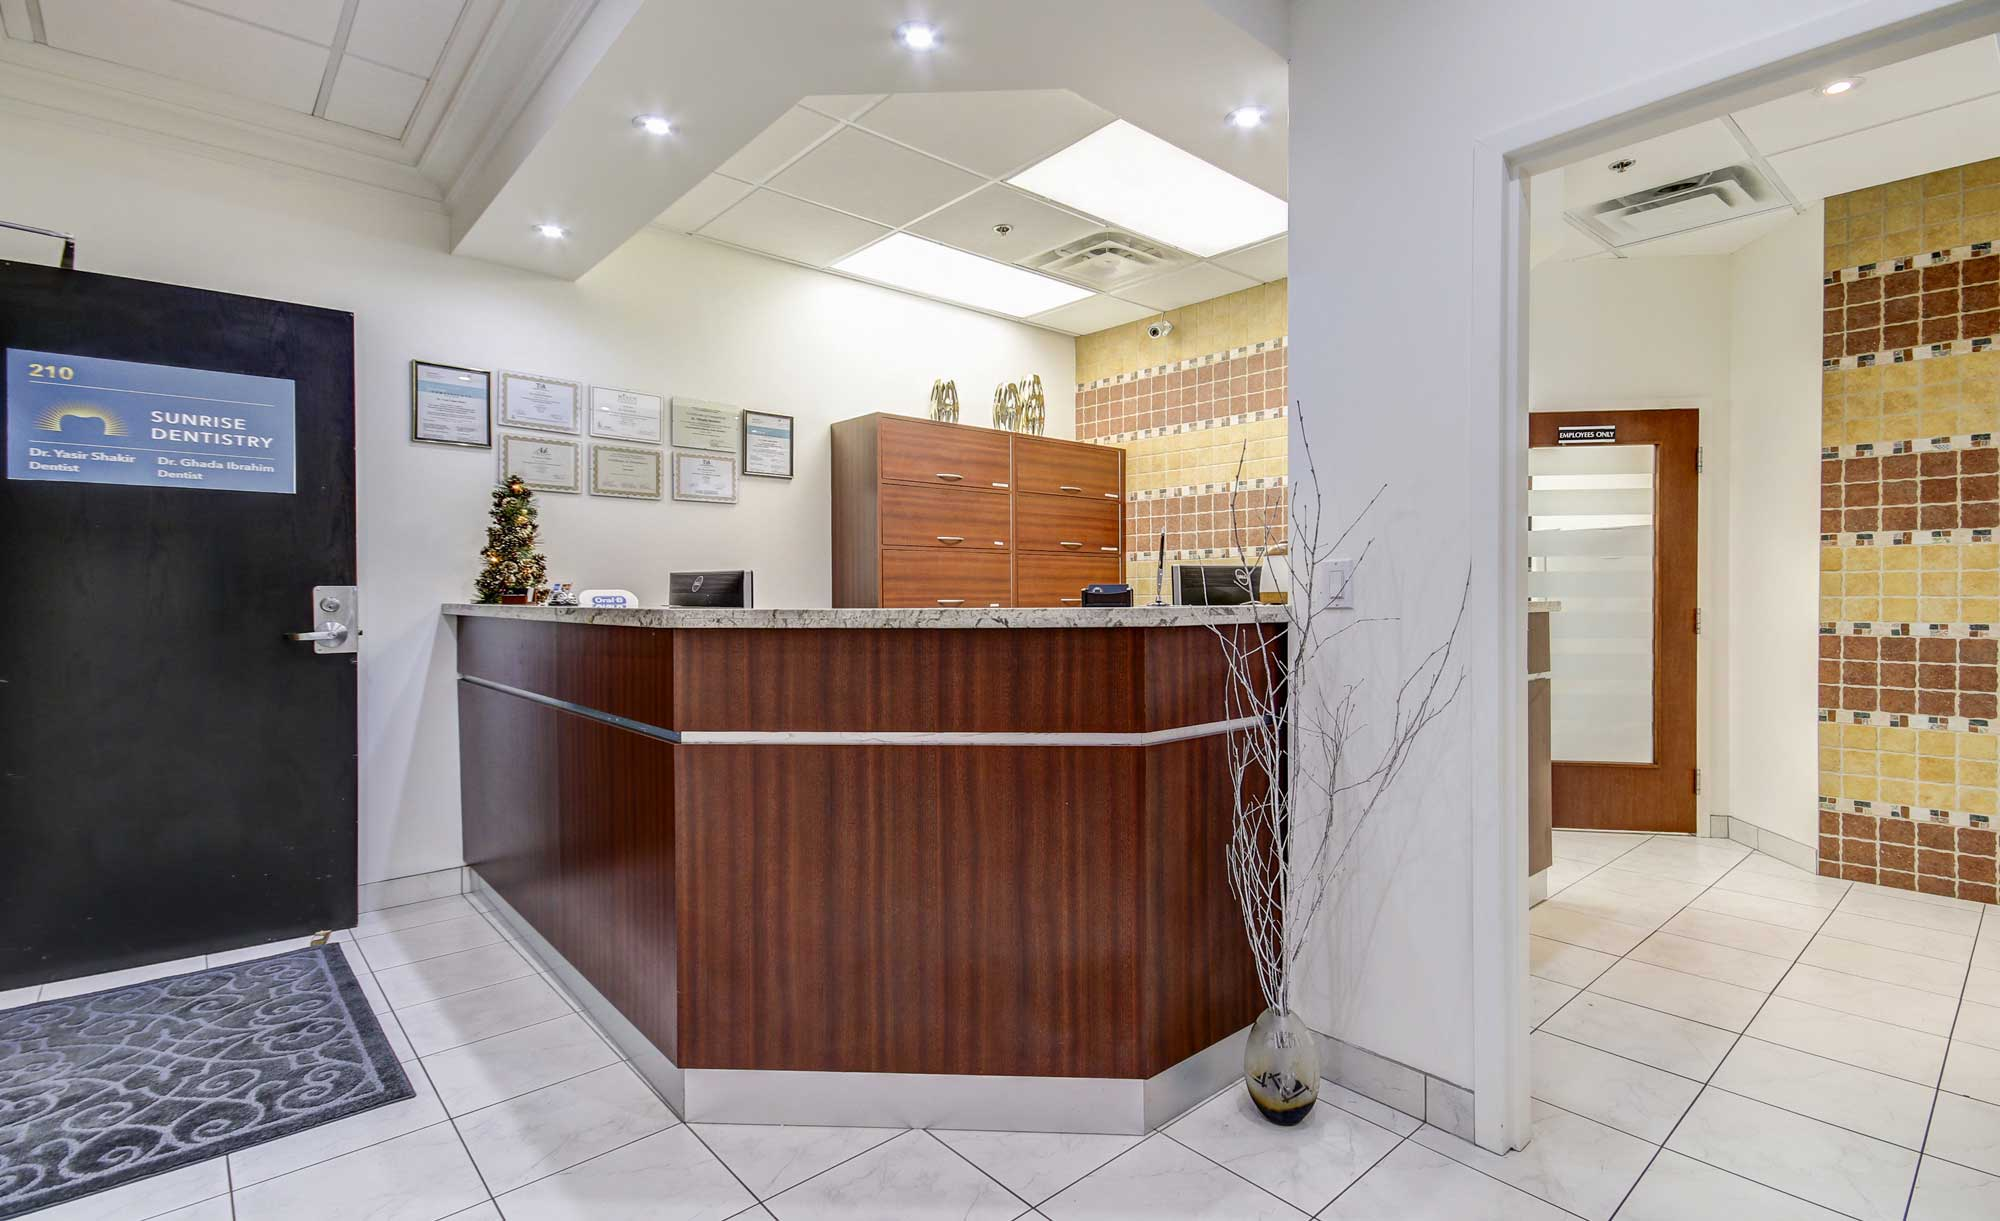 Dentist Etobicoke - Sunrise Dentistry Clean Dental Clinic